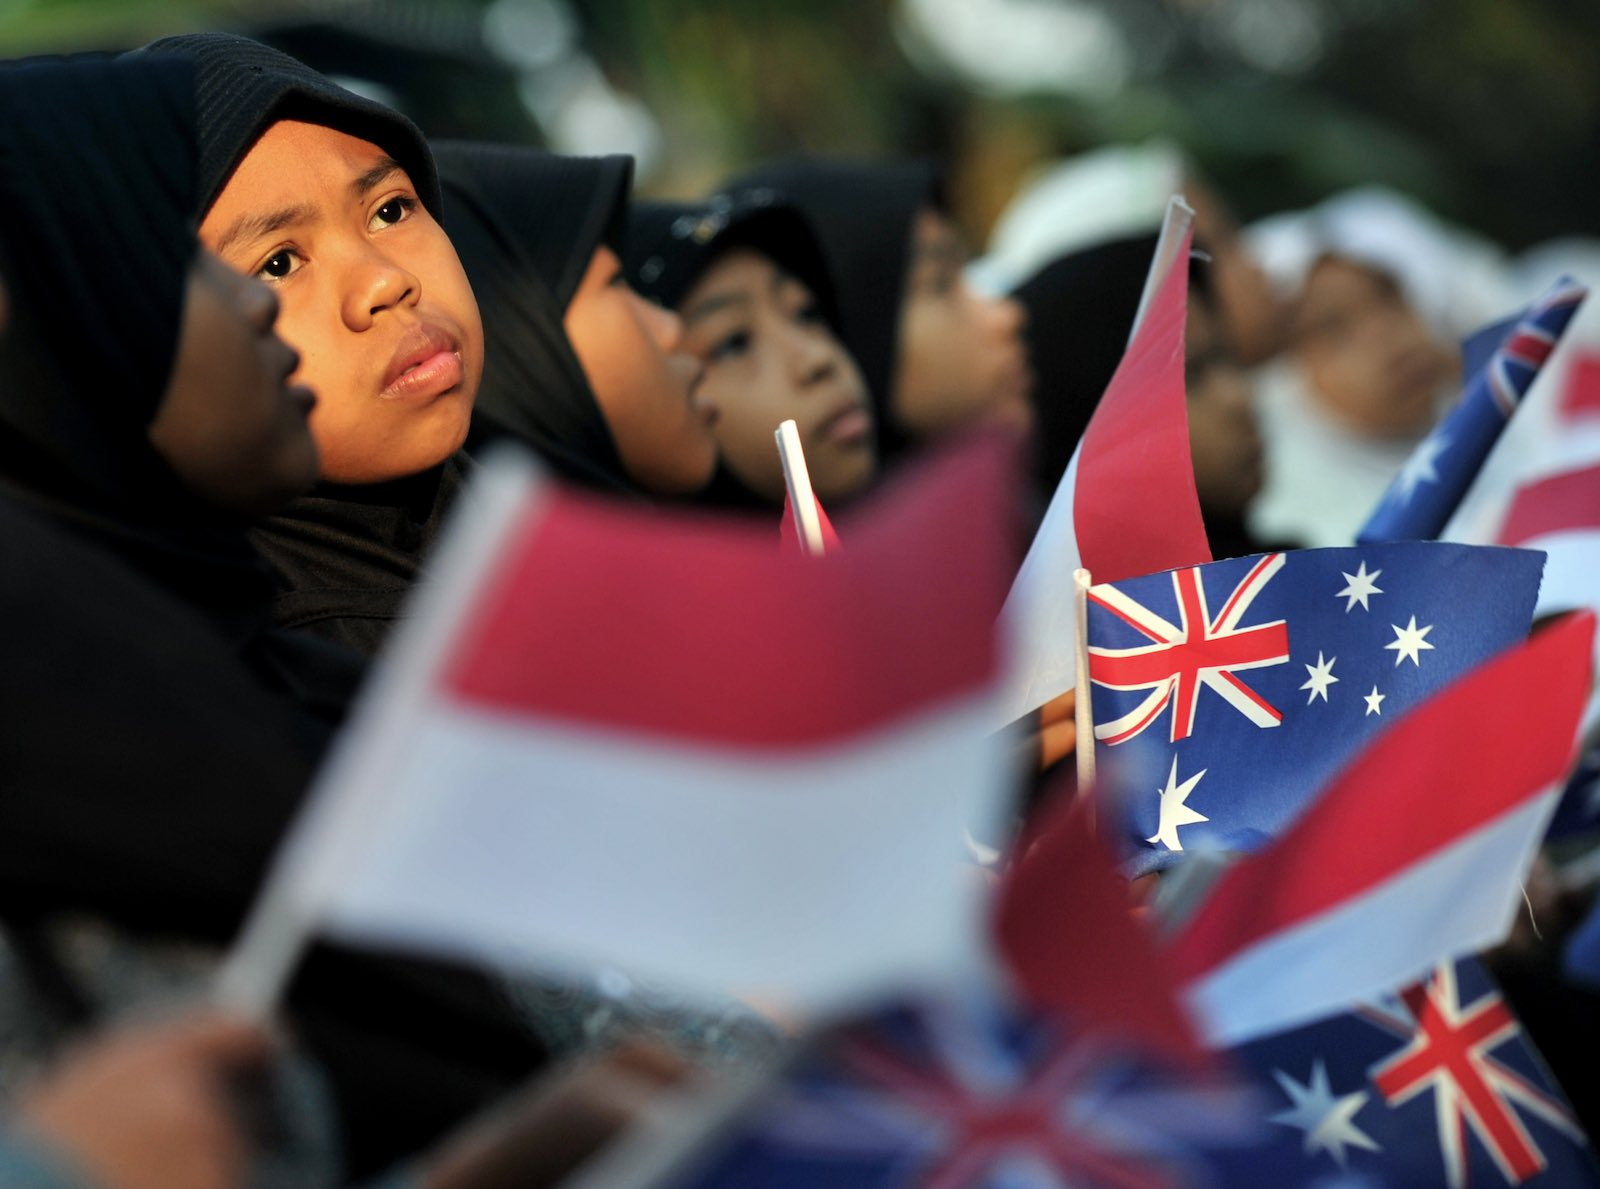 Indonesian language study has been in steady decline in Australia for many years (Photo: Bay Ismoyo via Getty)